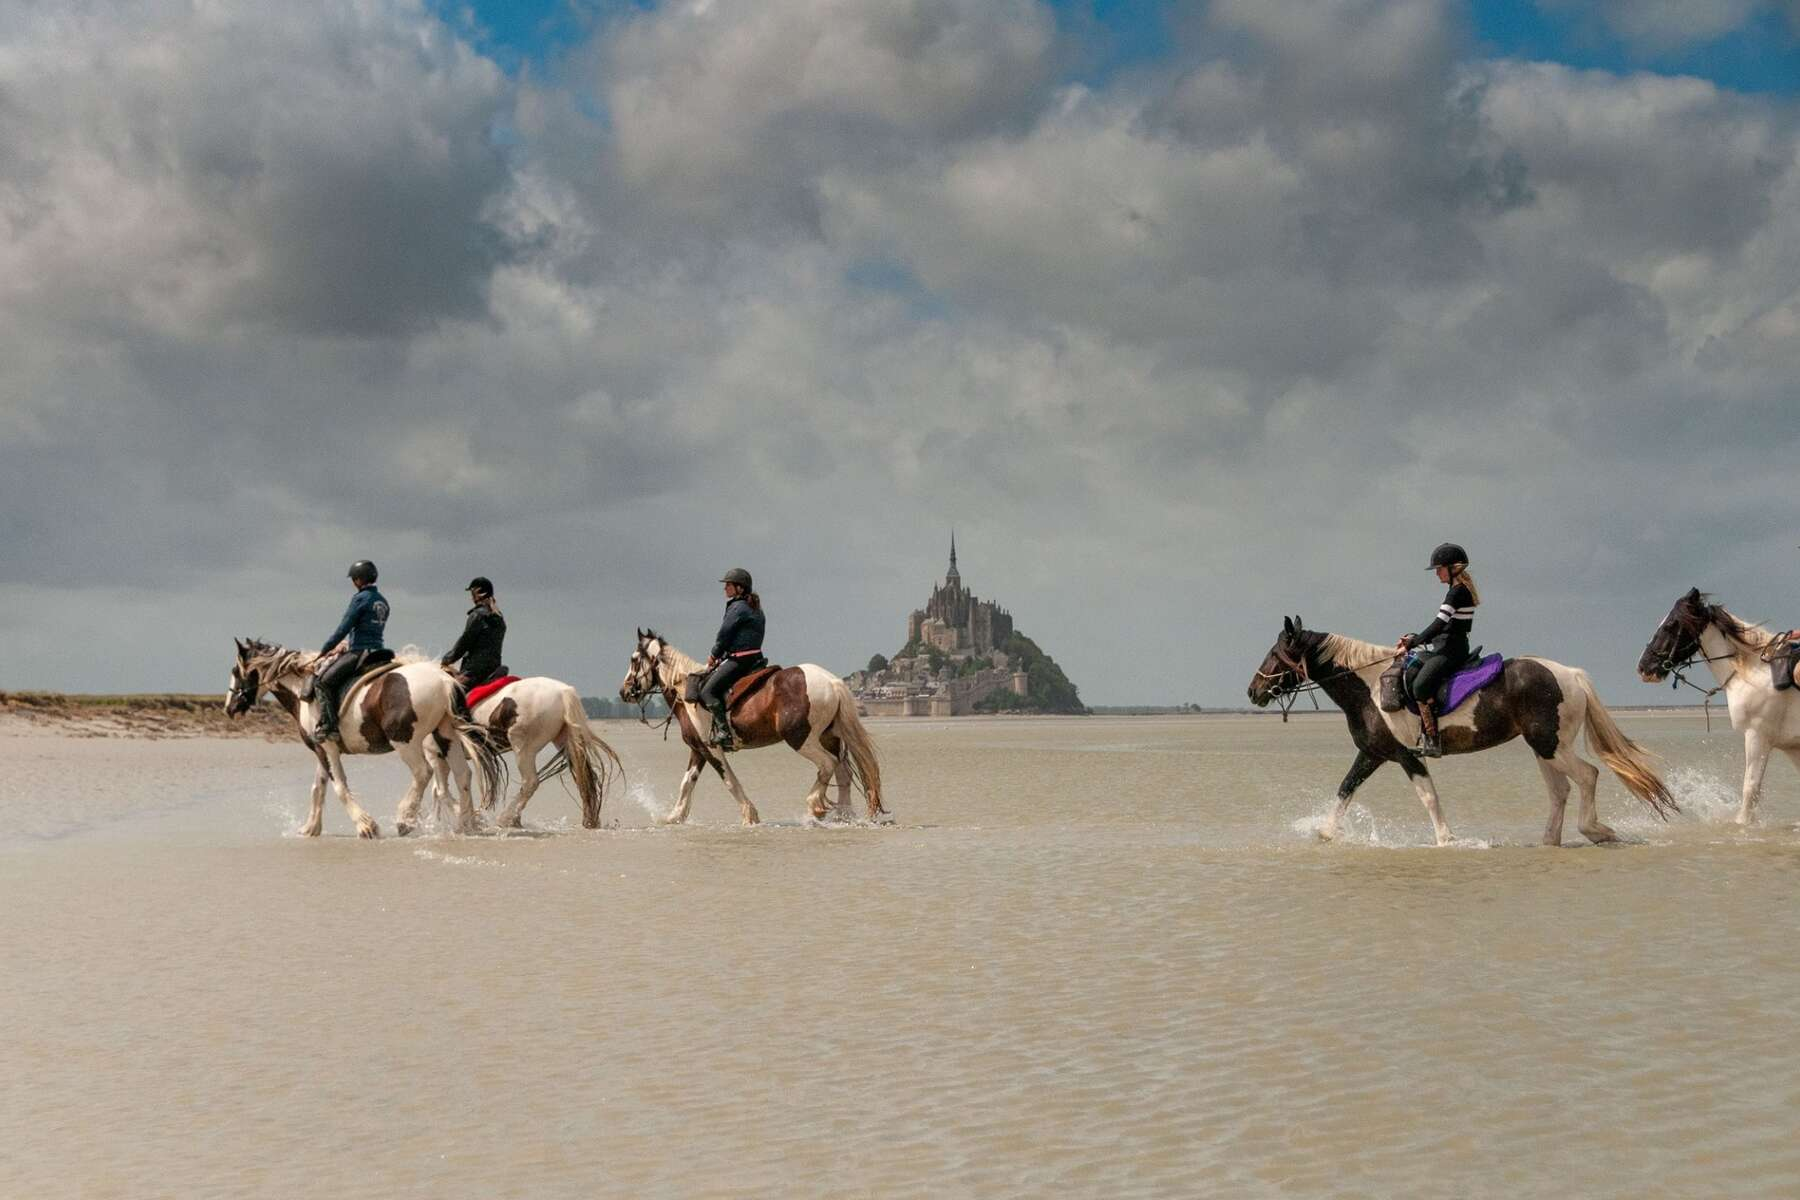 Riding with the Mt St Michel in the background, France